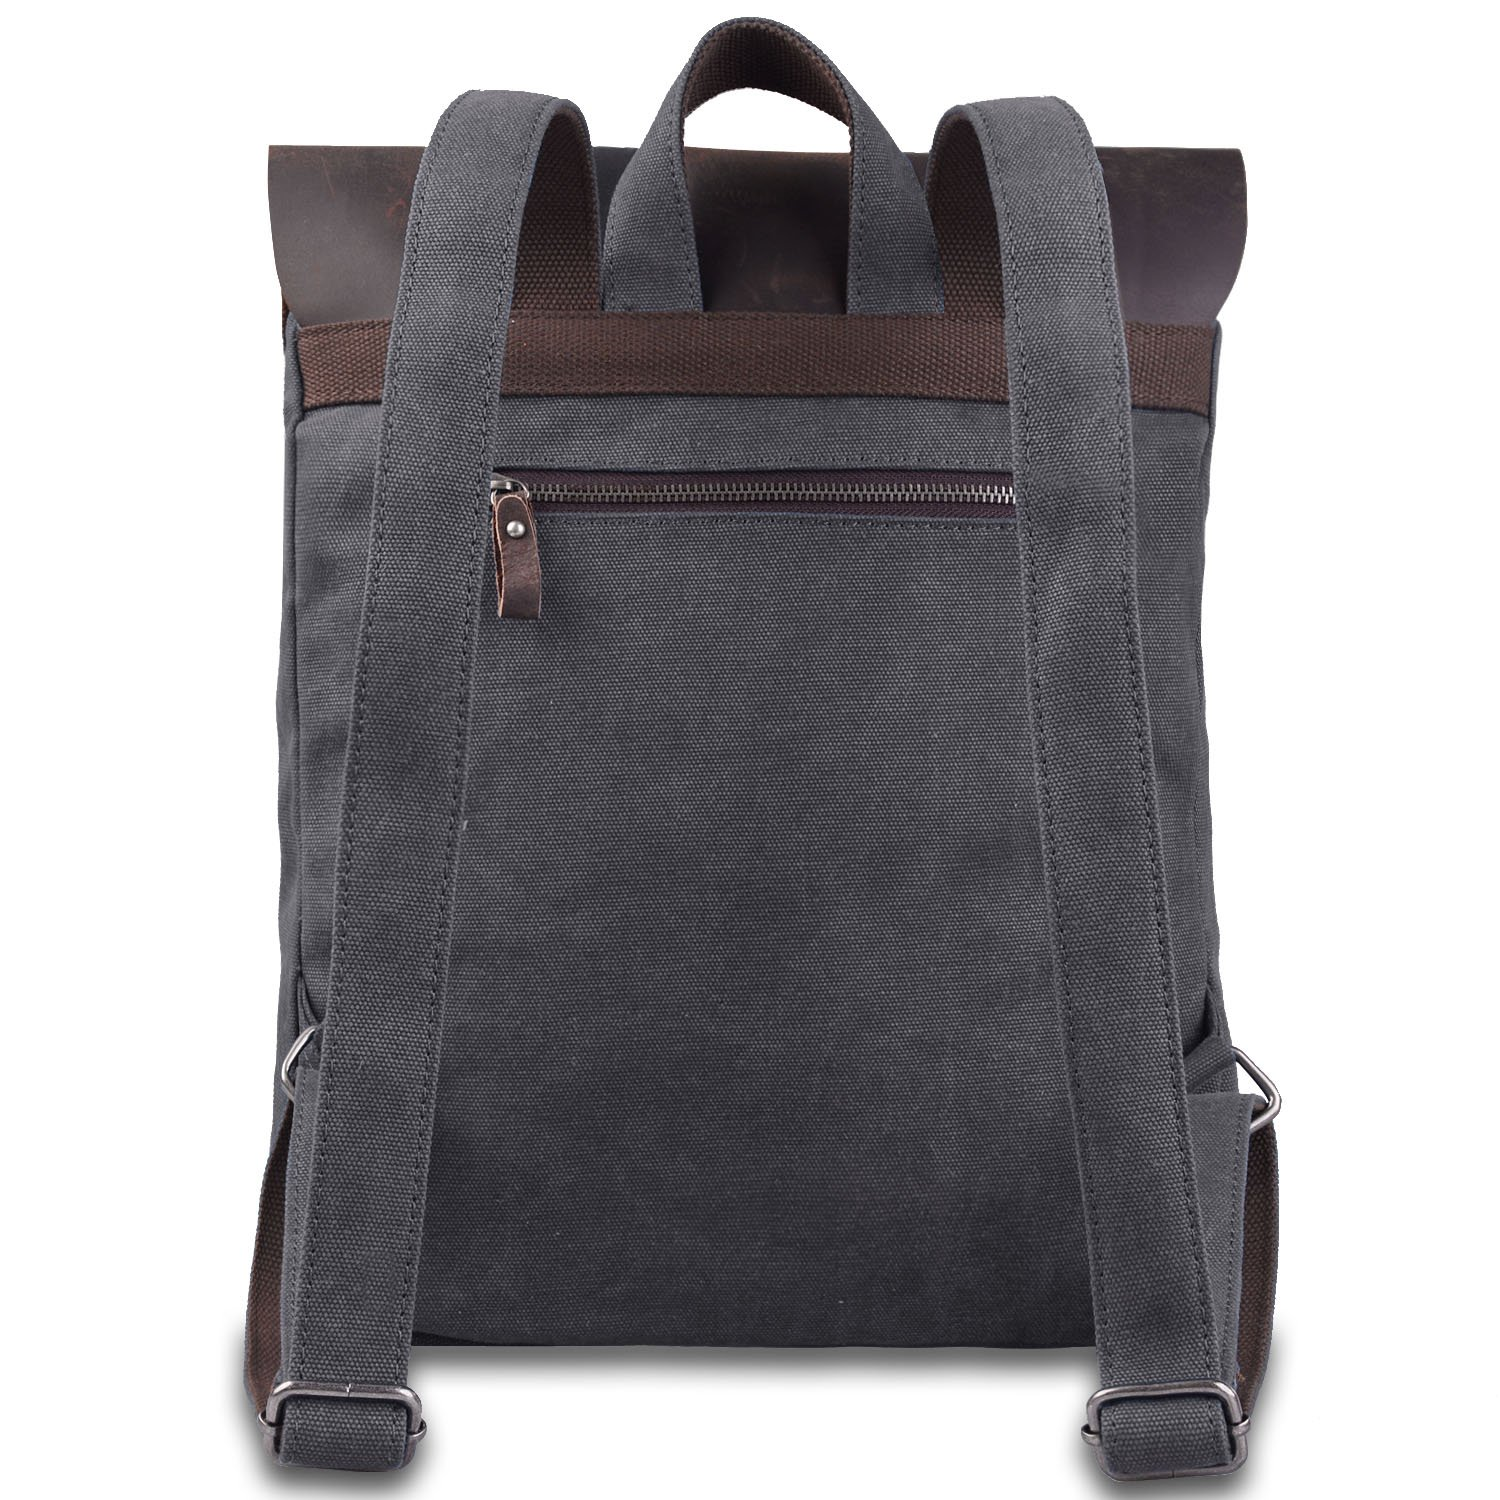 Everlane's popular weekender bag is beloved for its amazing quality and low price. Its water-resistant exterior comes in grey, black, navy, denim, and dark green options, and it fits just enough clothing and shoes for a few days.